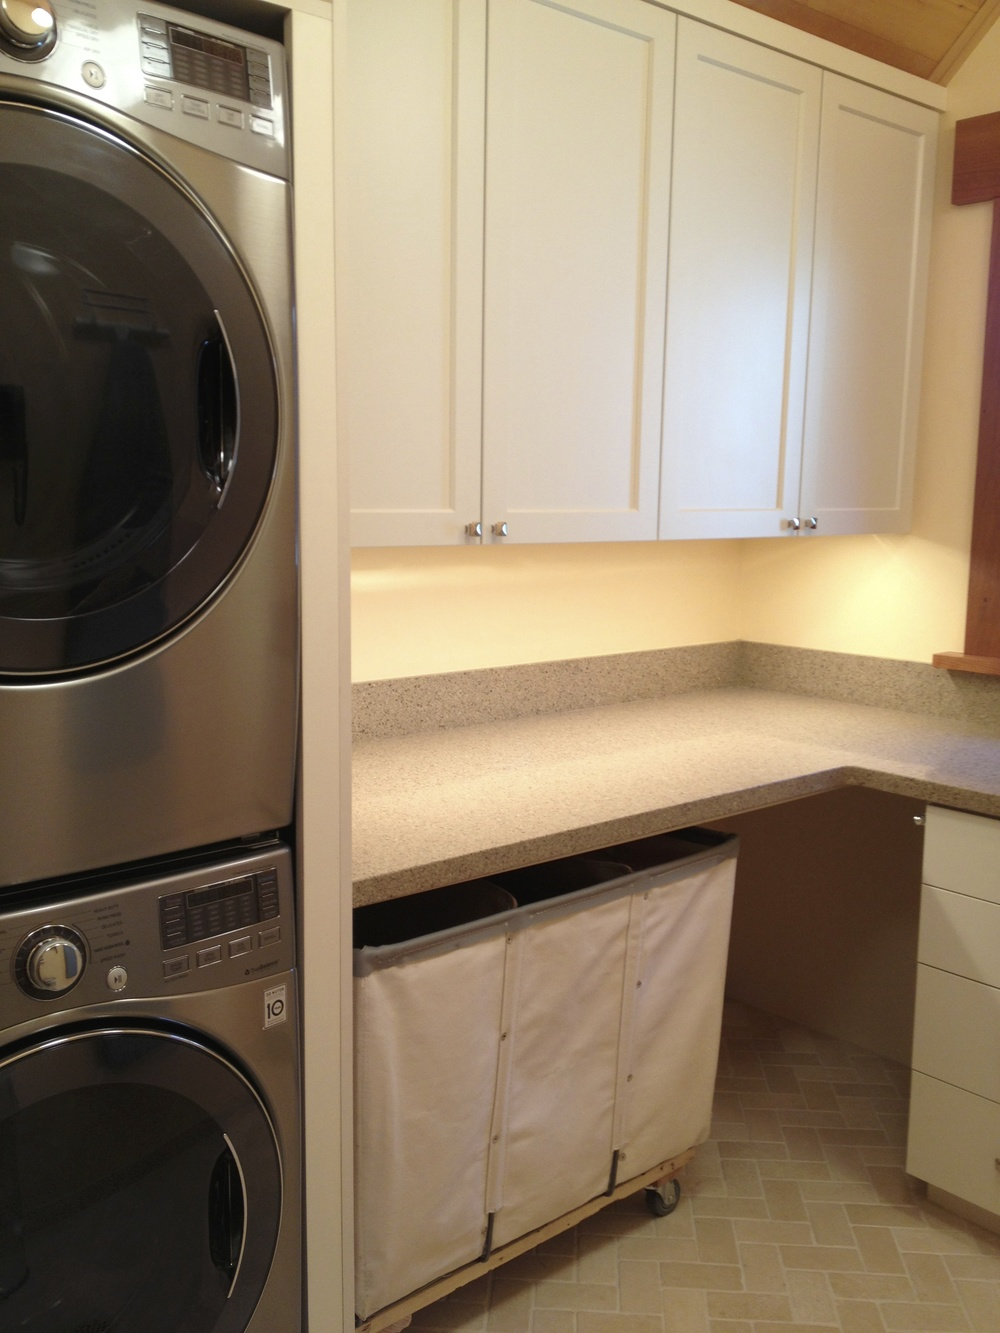 Laundry Room By RC CABINETS U0026 CLOSETS For This North Shore Lake Tahoe Home  Is Designed For This Triple Laundry Basket From Steel Canvas Of Cambridge,  ...